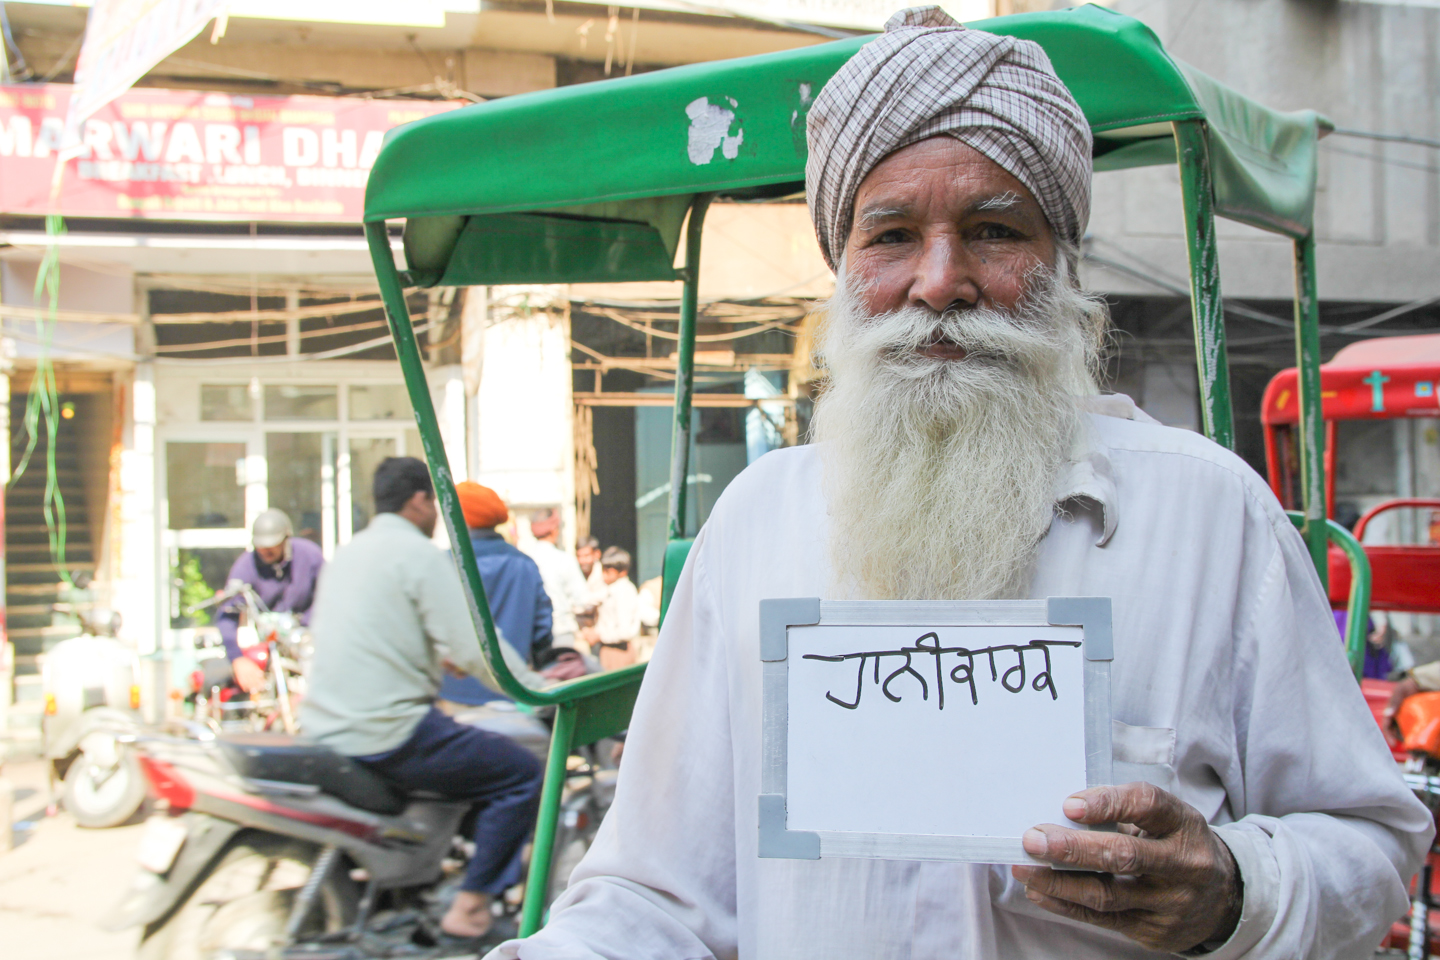 Masa Singh, a cycle rickshaw driver in Amritsar, Punjab, might think chai is harmful, but he needs it for the energy. 'I have to drink it.'